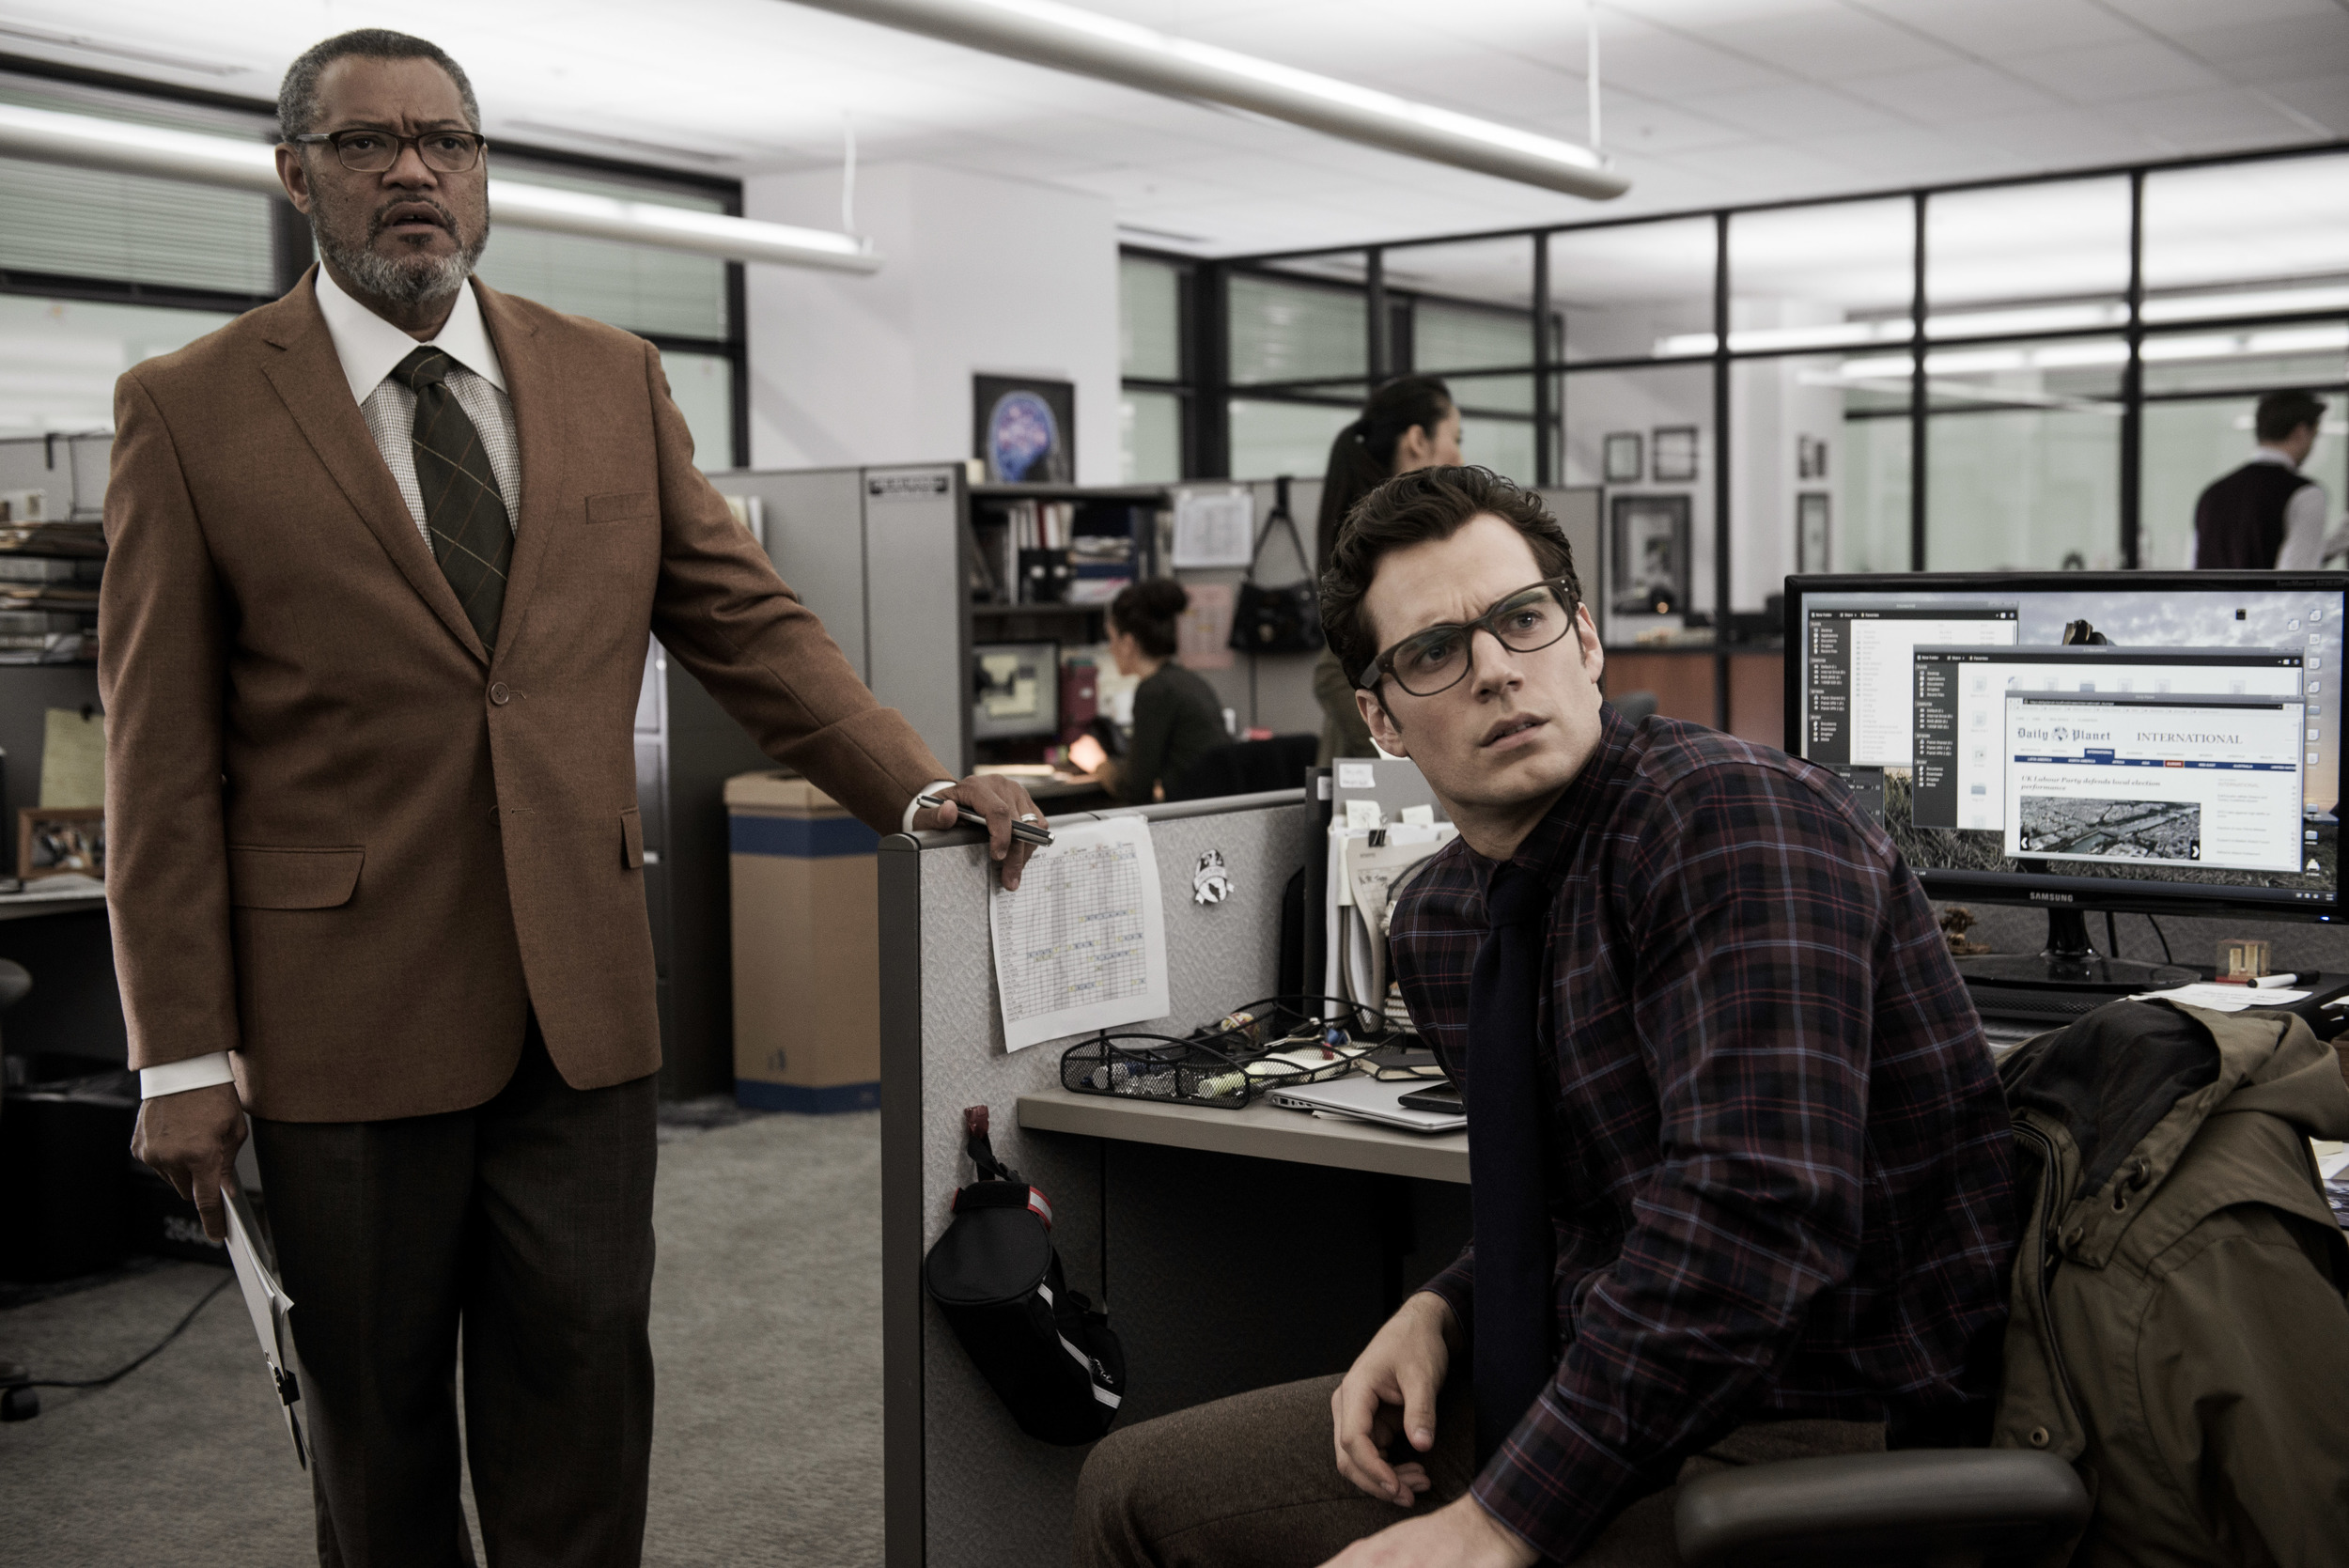 batman-vs-superman-laurence-fishburne-henry-cavill-image.jpg